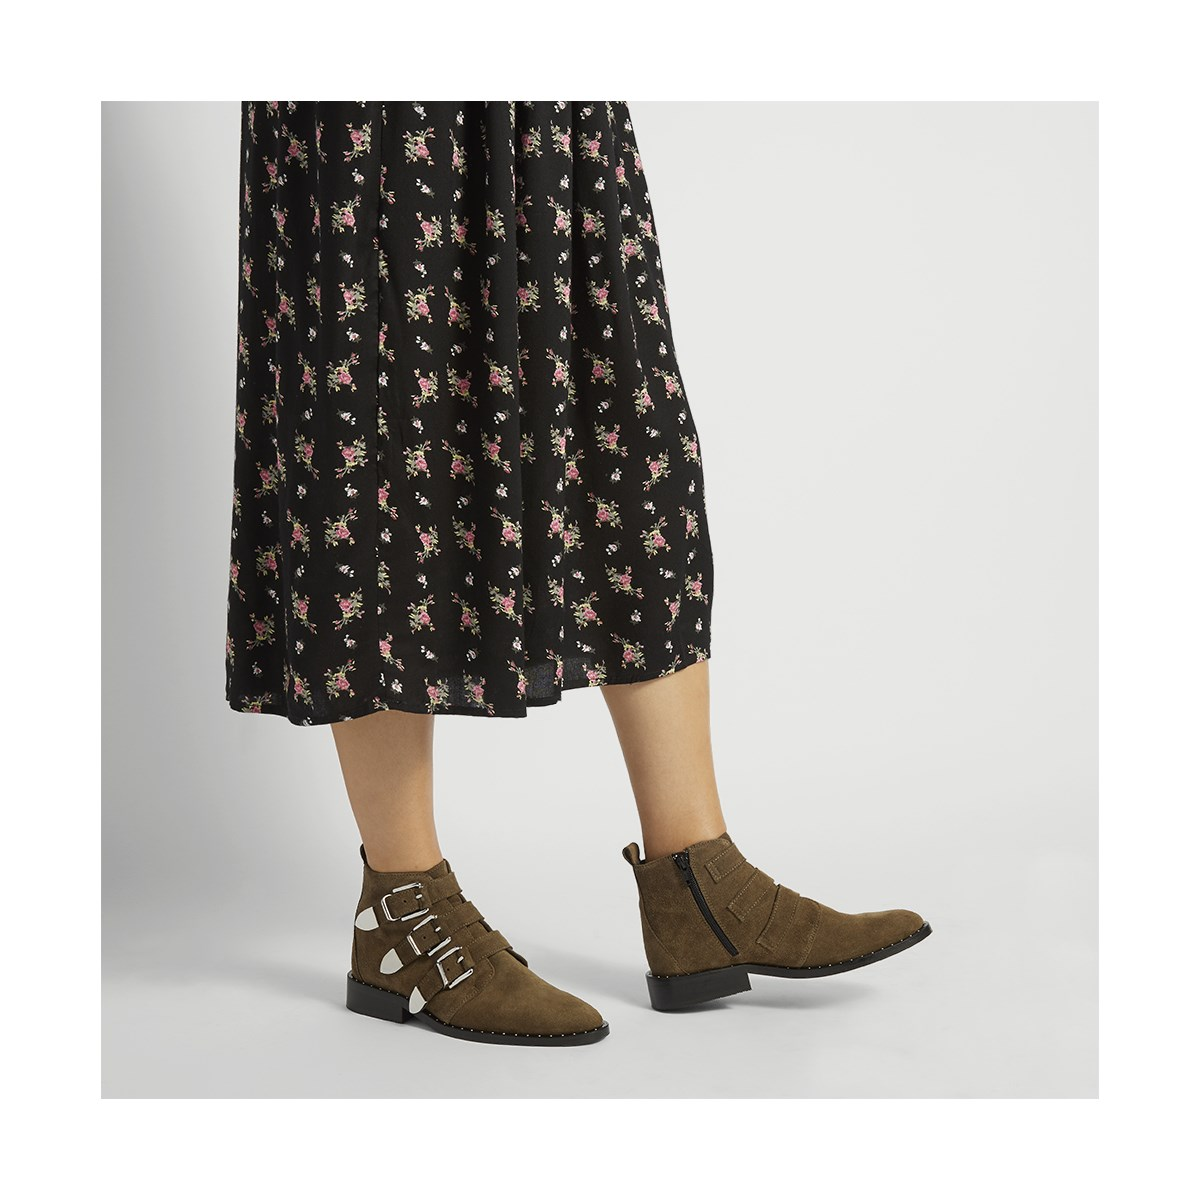 Women's Sloane Boot in Khaki